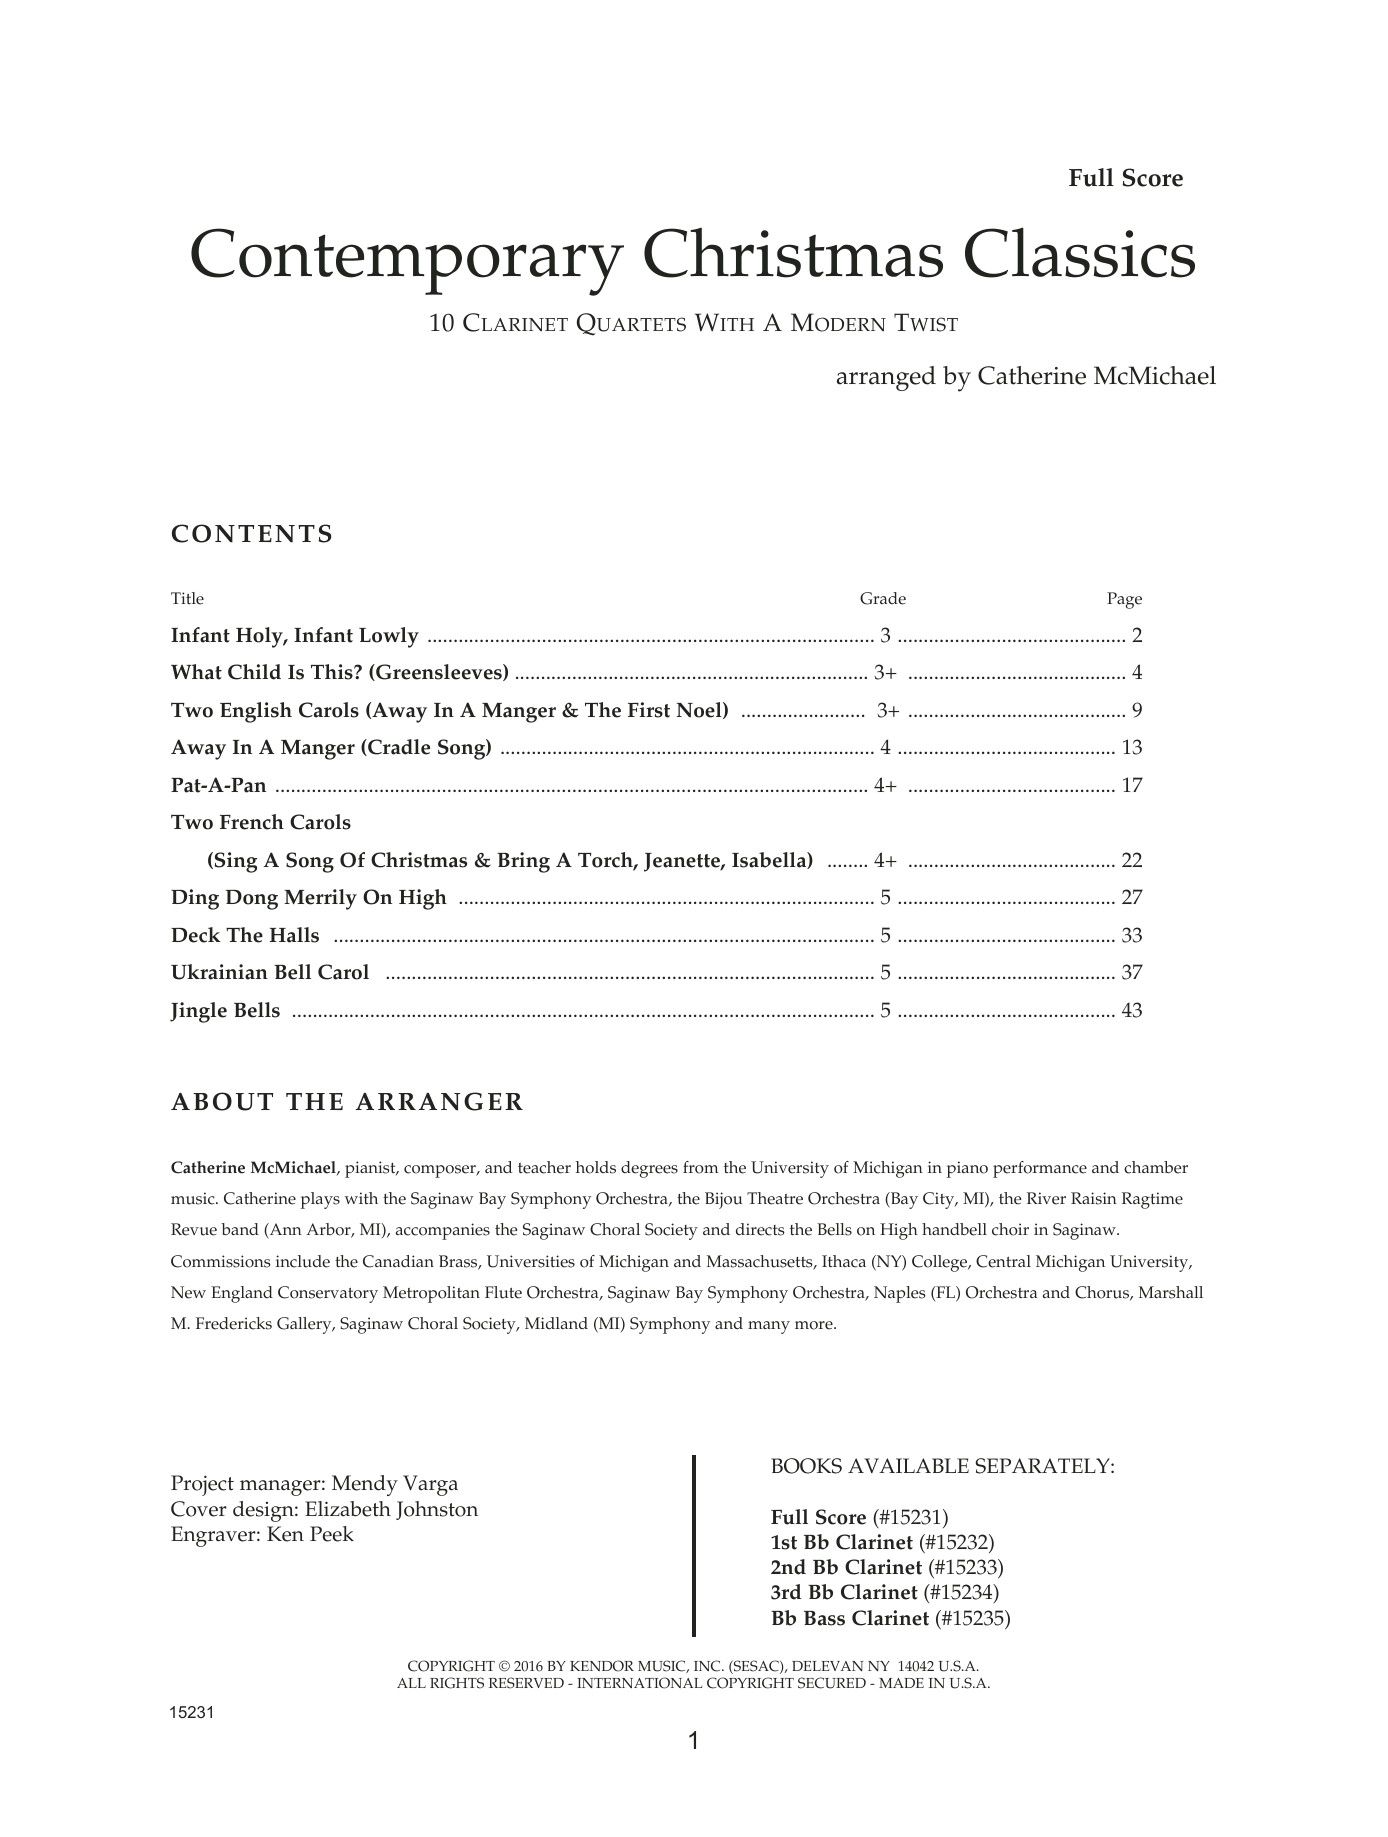 Contemporary Christmas Classics - Full Score Sheet Music